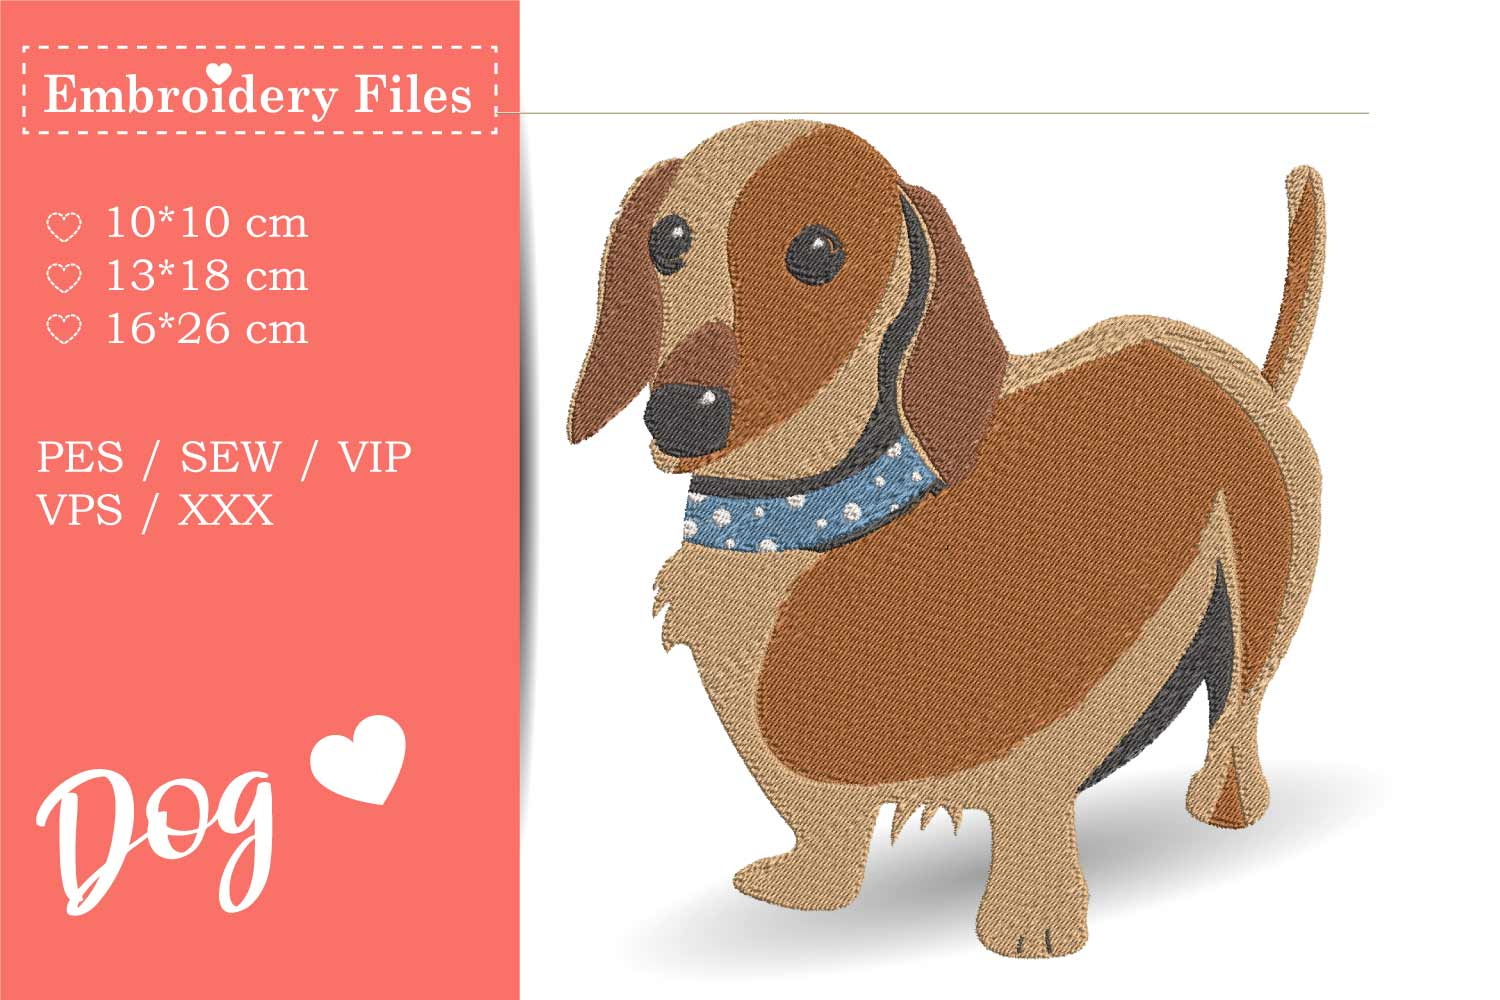 Dogs - Mini Bundle - Embroidery Files for Beginners example image 4